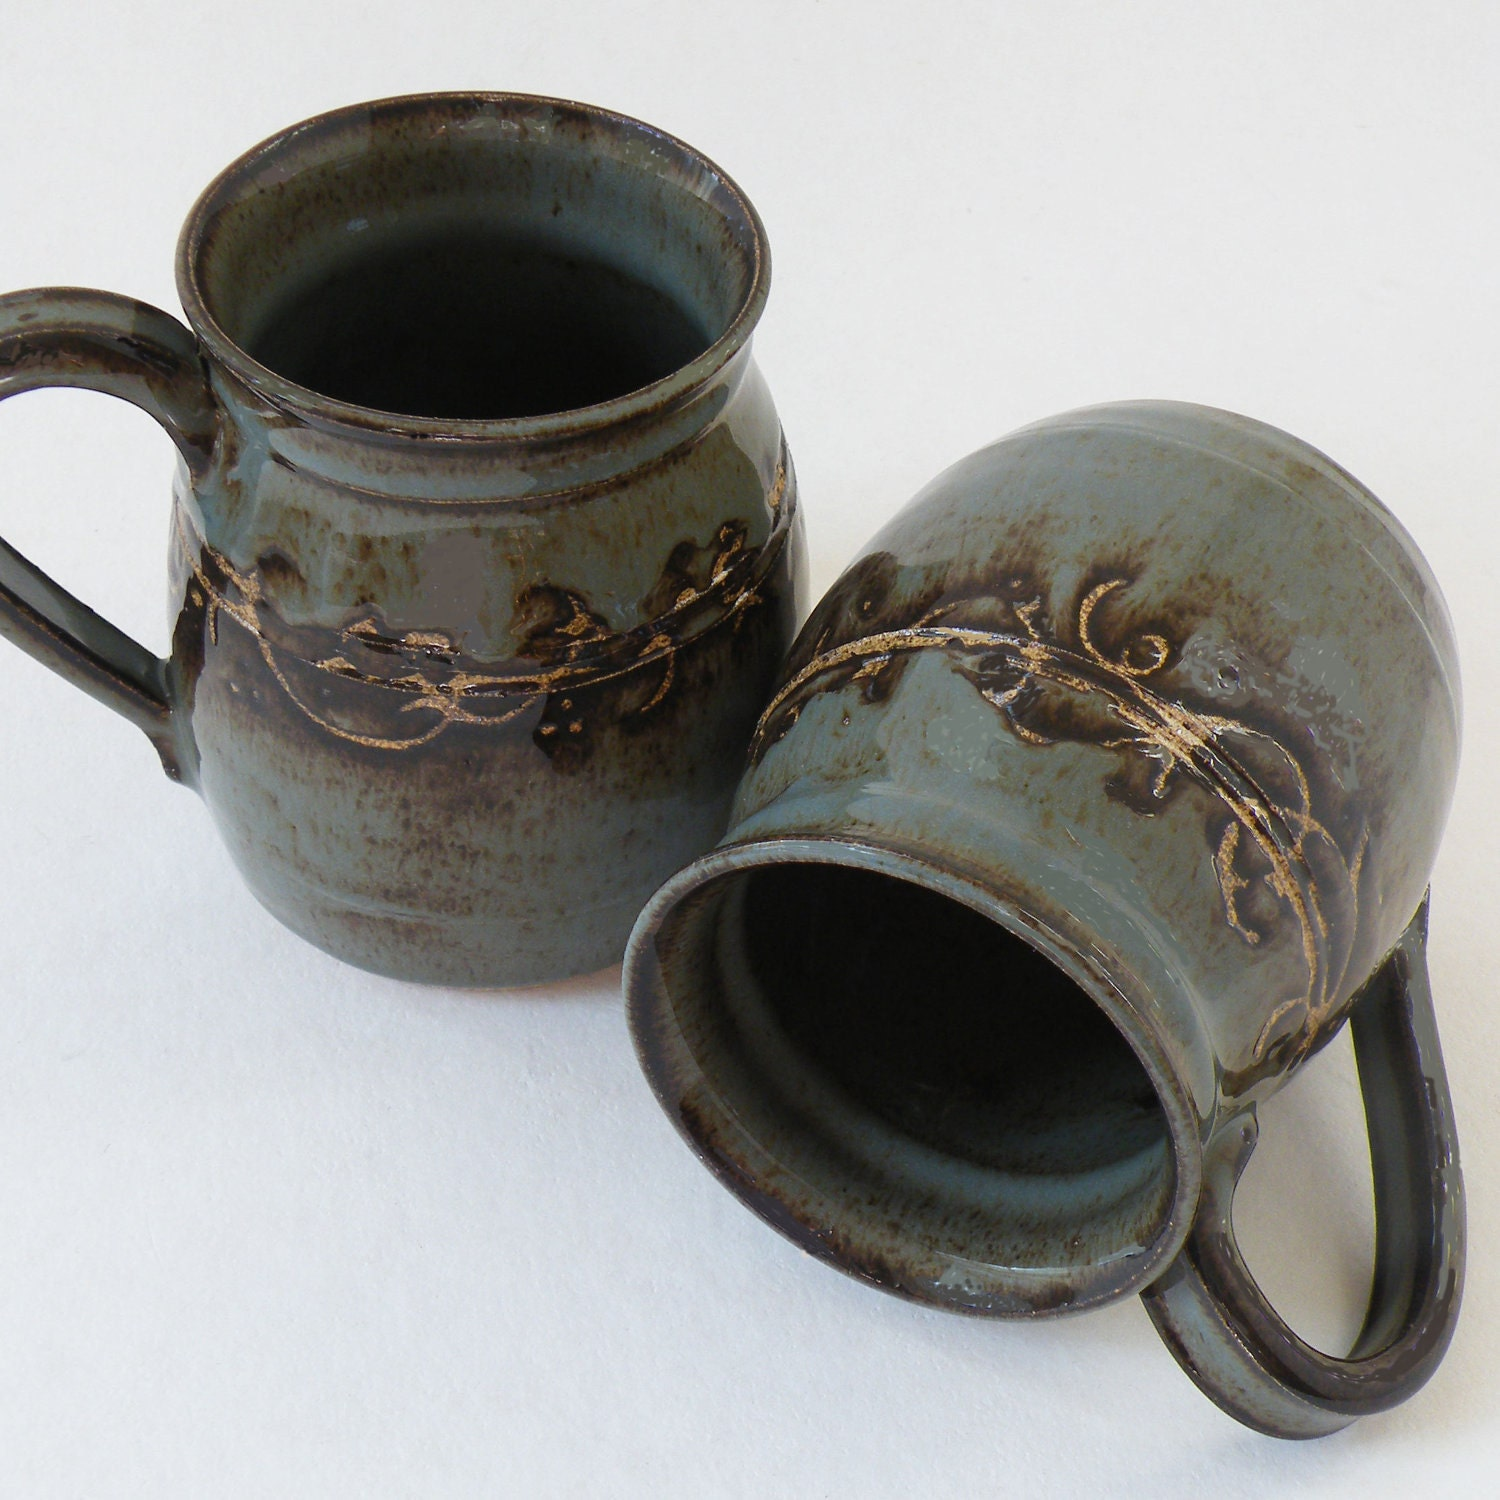 Find great deals on eBay for ny stoneware. Shop with confidence. Skip to main content. eBay: Watervliet Arsenal Watervliet New York stoneware cup mug coffee tea. $ Buy It Now. SPONSORED. Currier & Ives Museum of the City of New York Stoneware MCNY Sugar Bowl. $ Top Rated Plus.